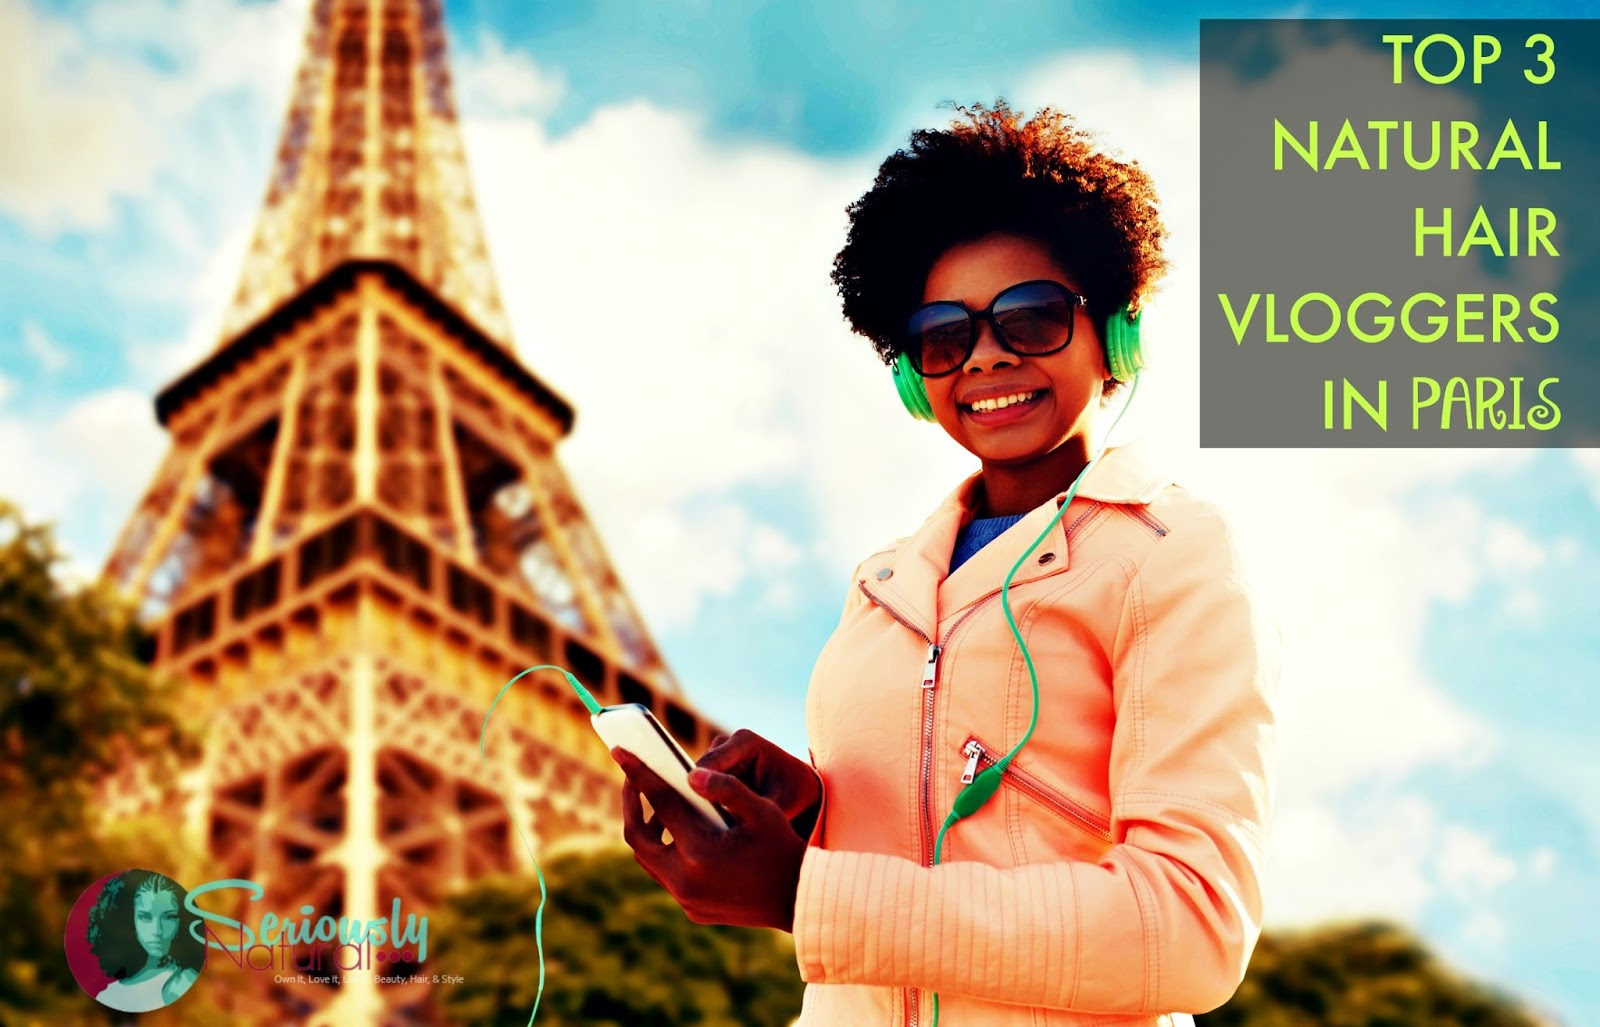 TOP 3 NATURAL HAIR VLOGGERS IN PARIS